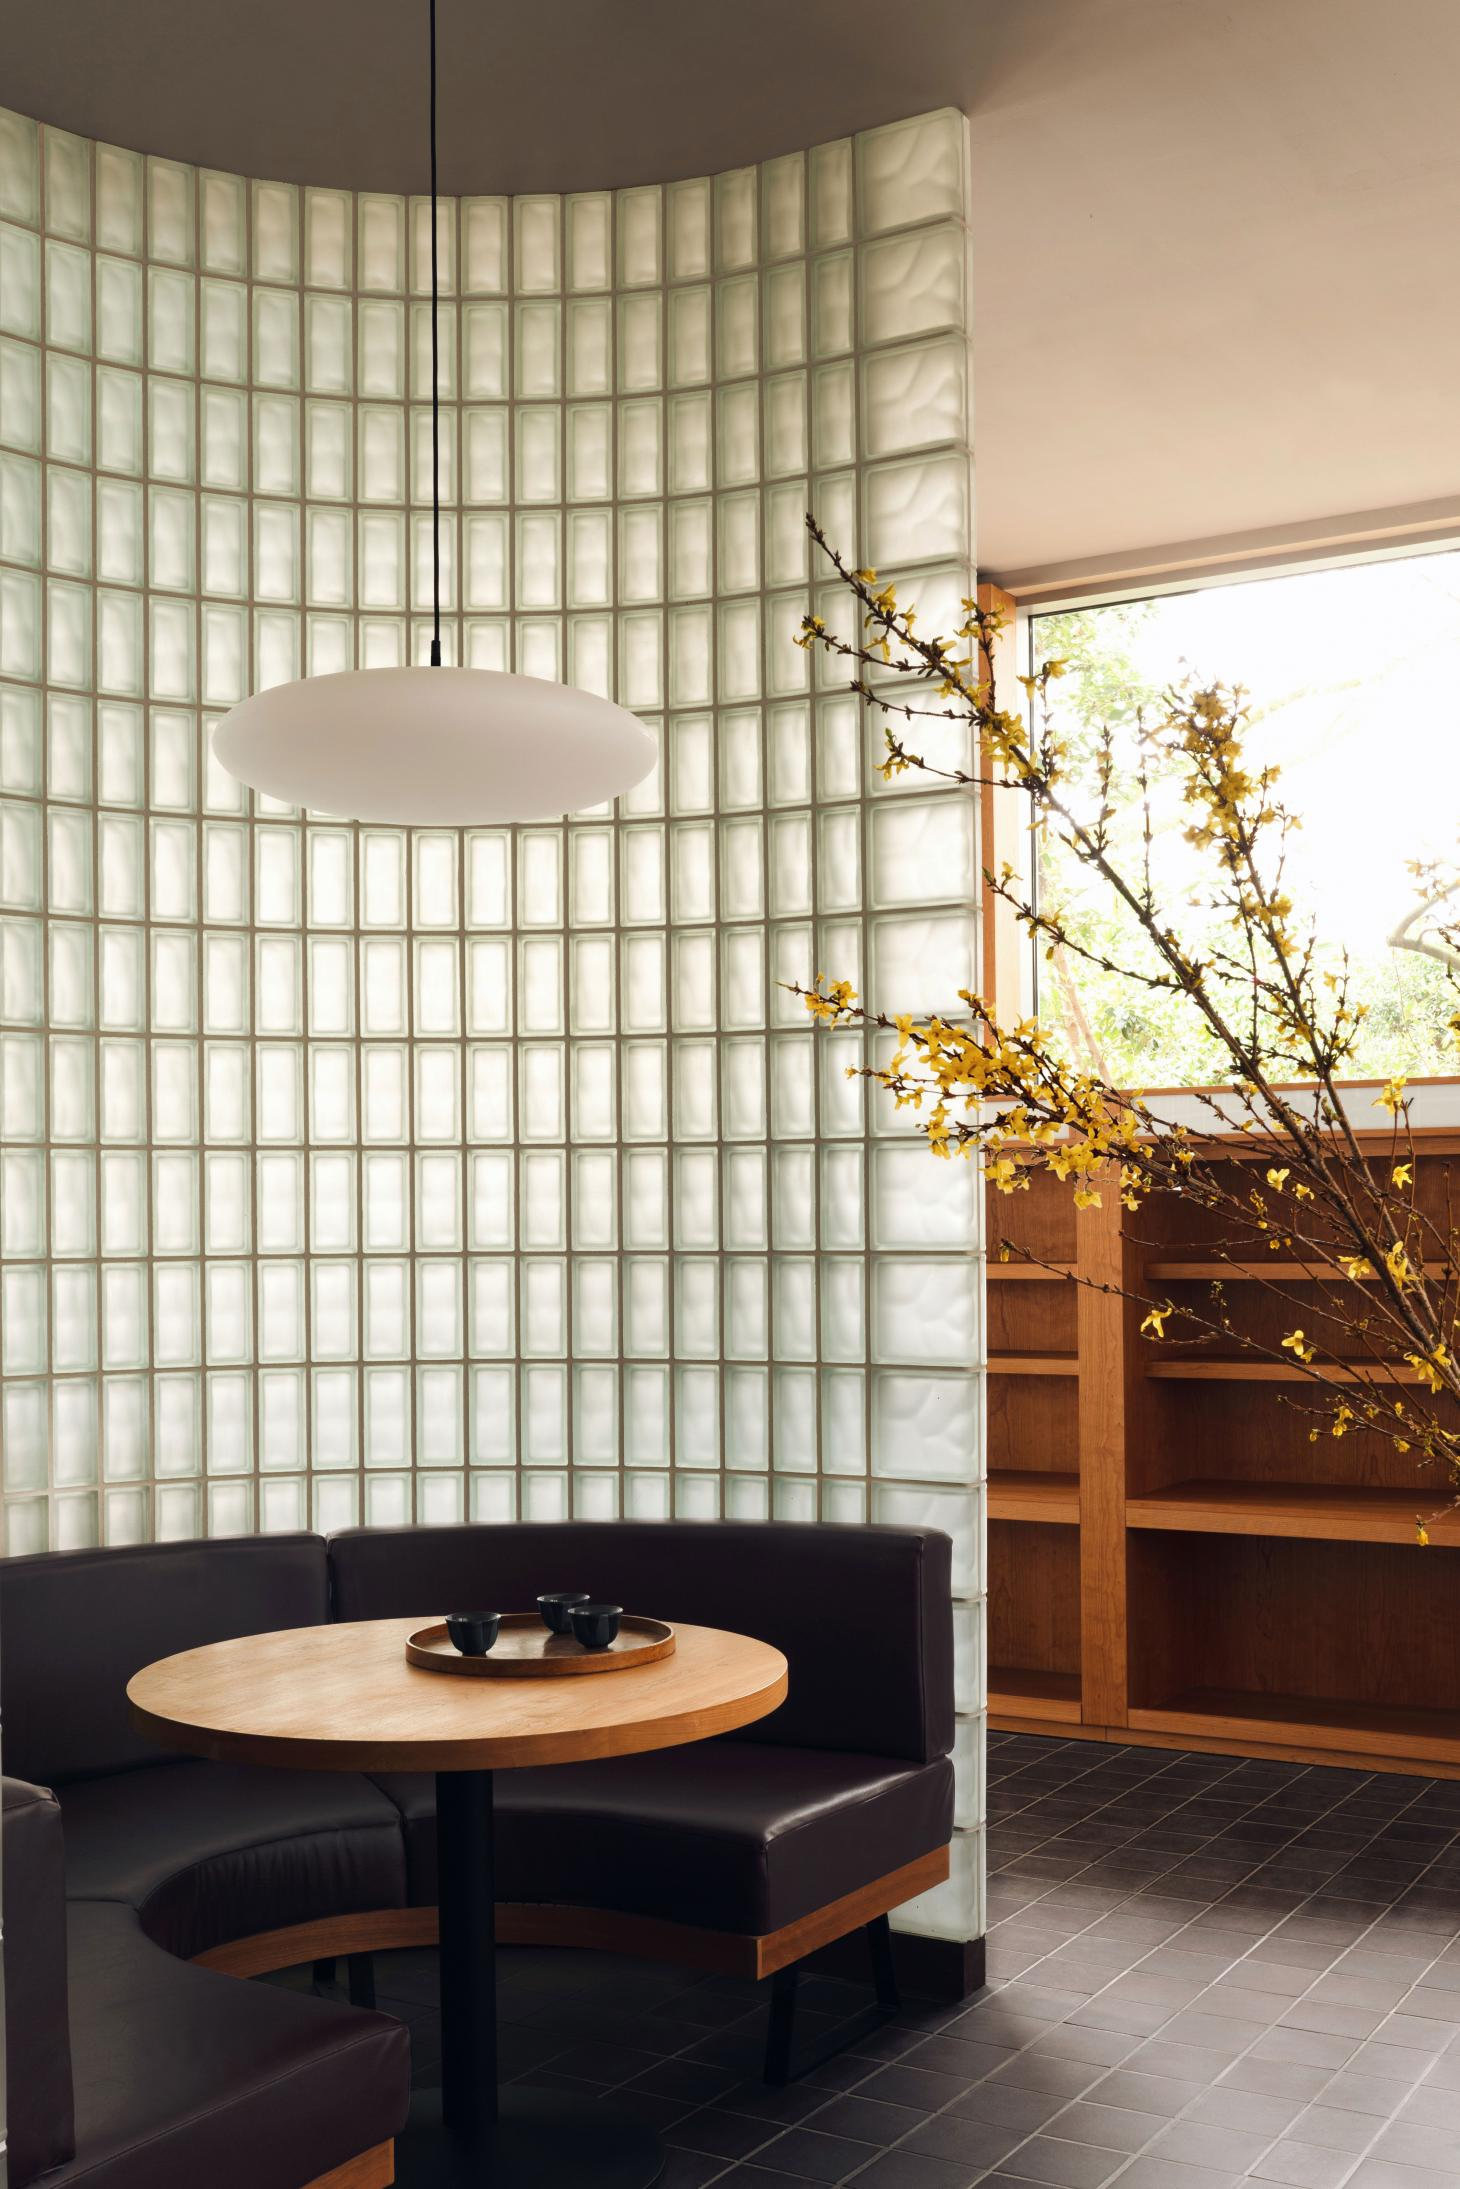 Maido Sushi interiors designed by Child Studio in 1960s London post office